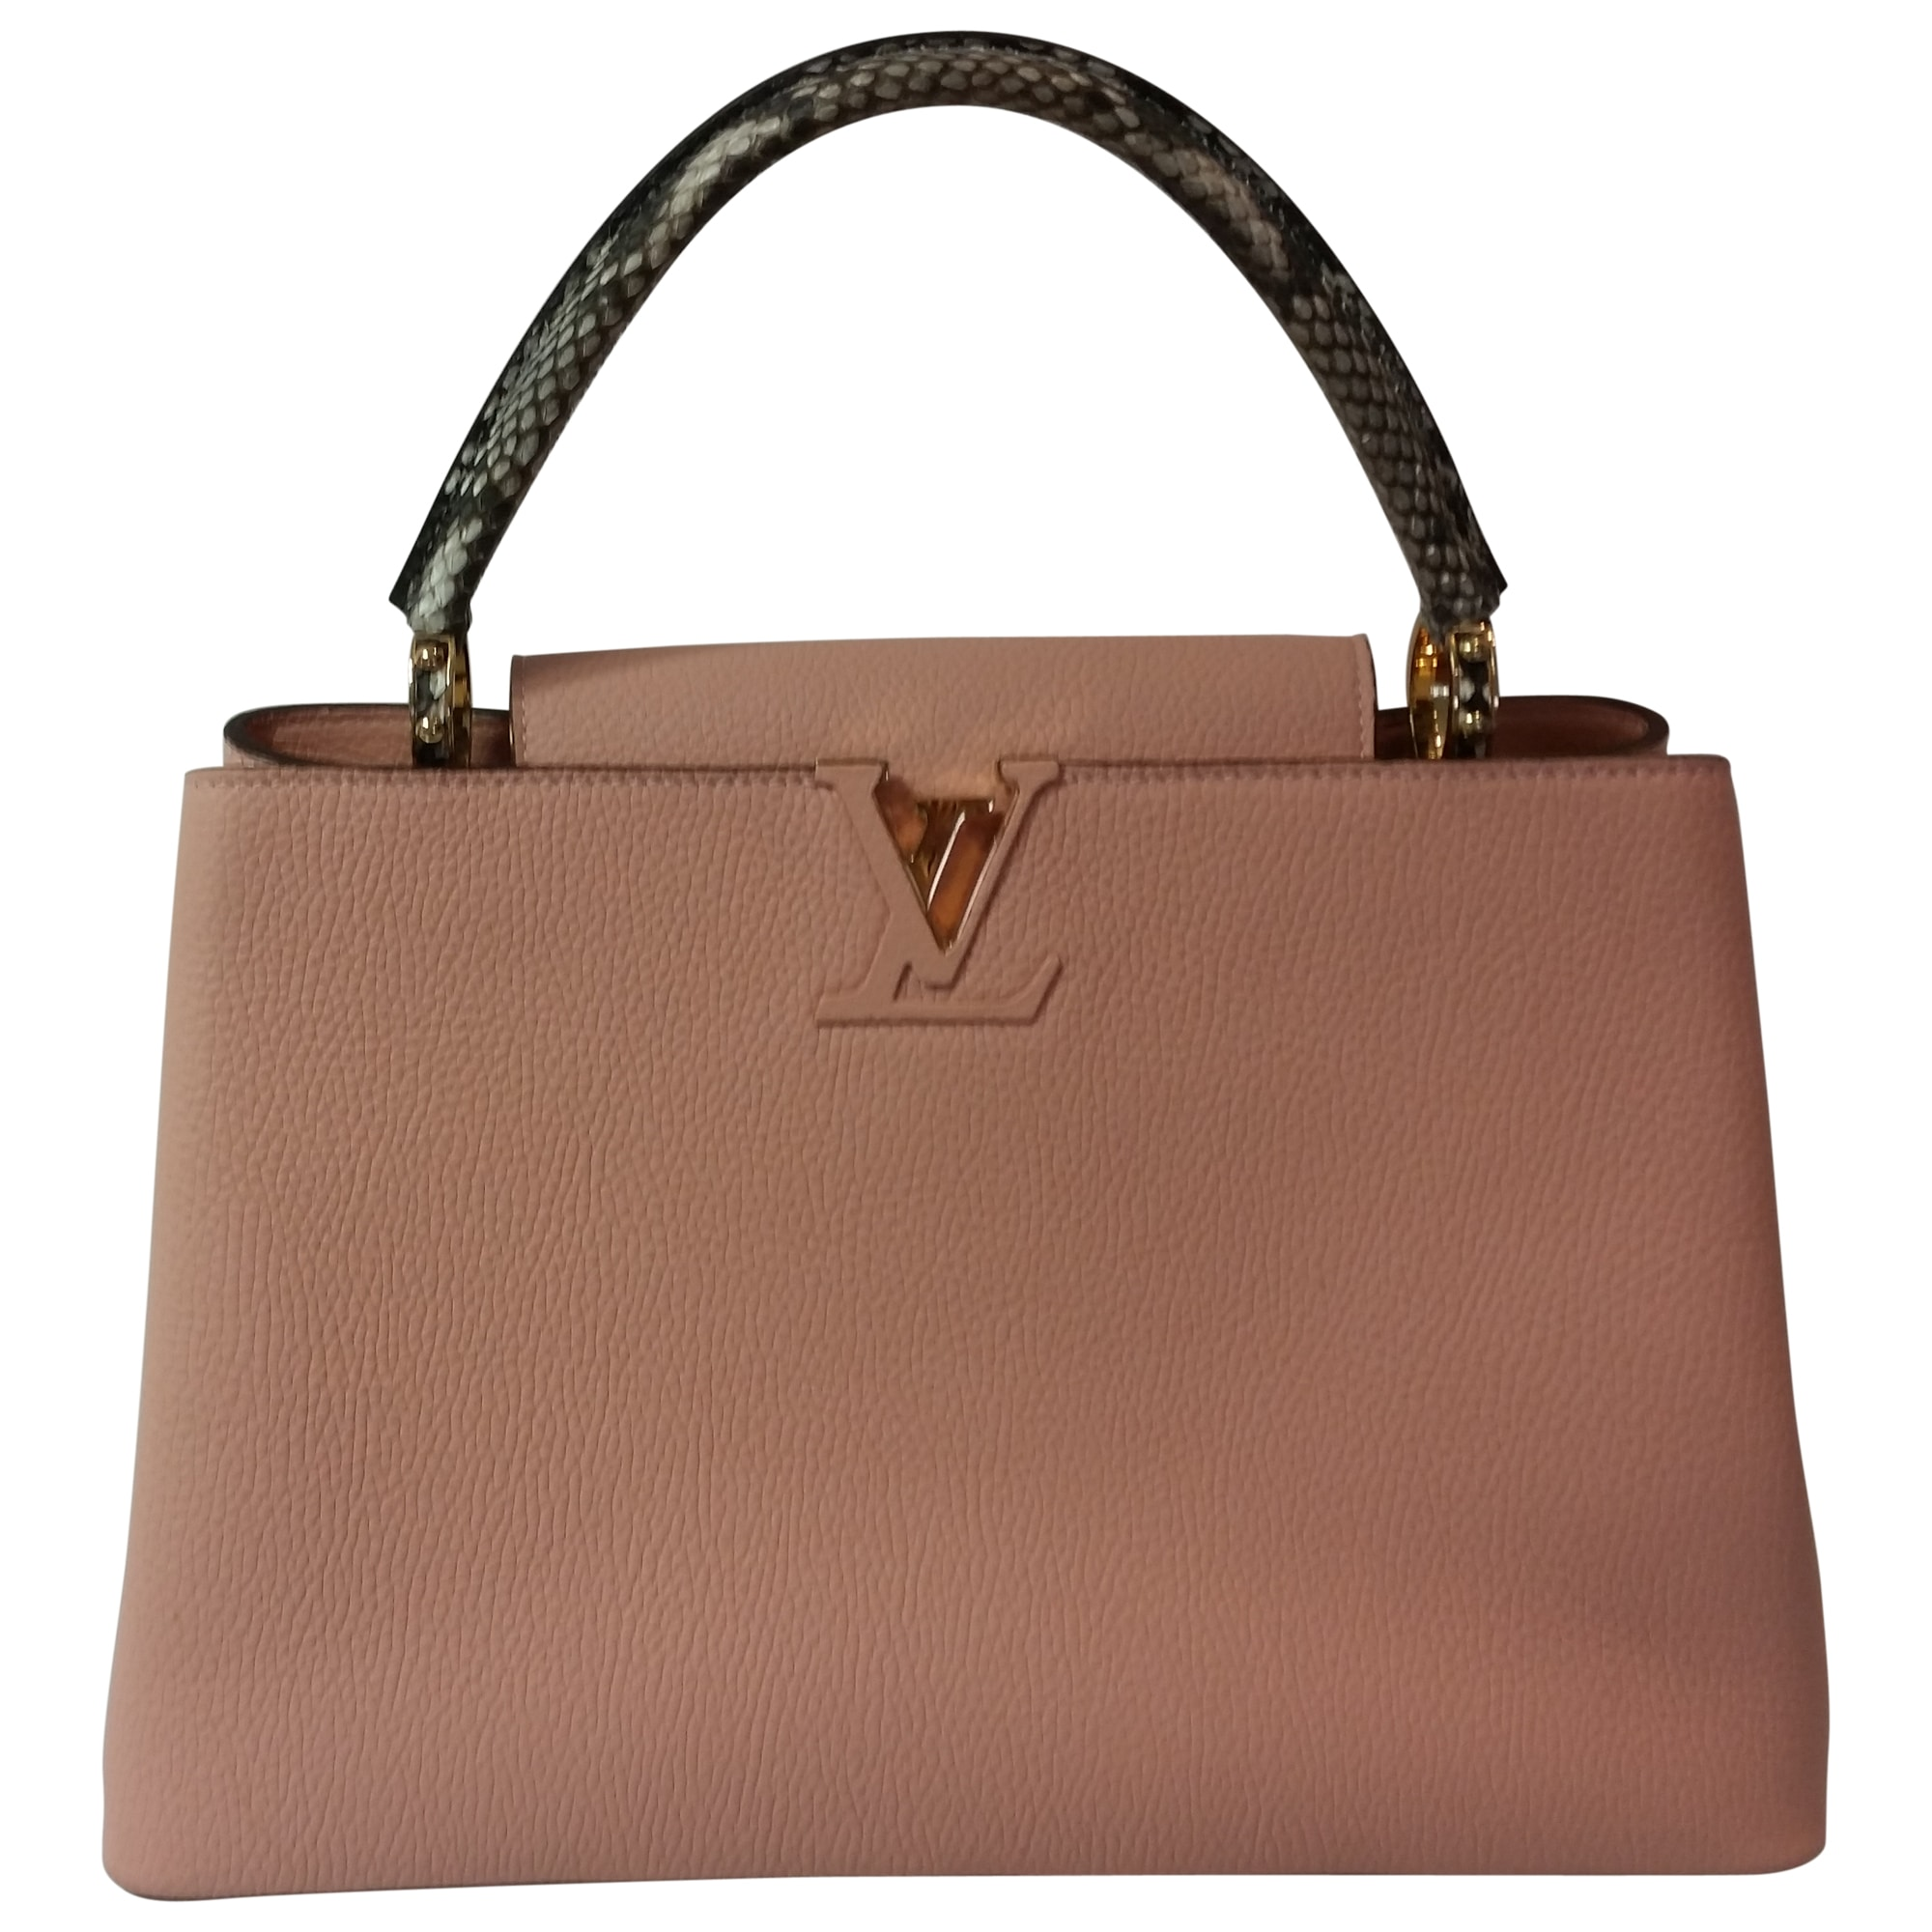 b0abc502a088 Sac à main en cuir LOUIS VUITTON Capucines Rose, fuschia, vieux rose